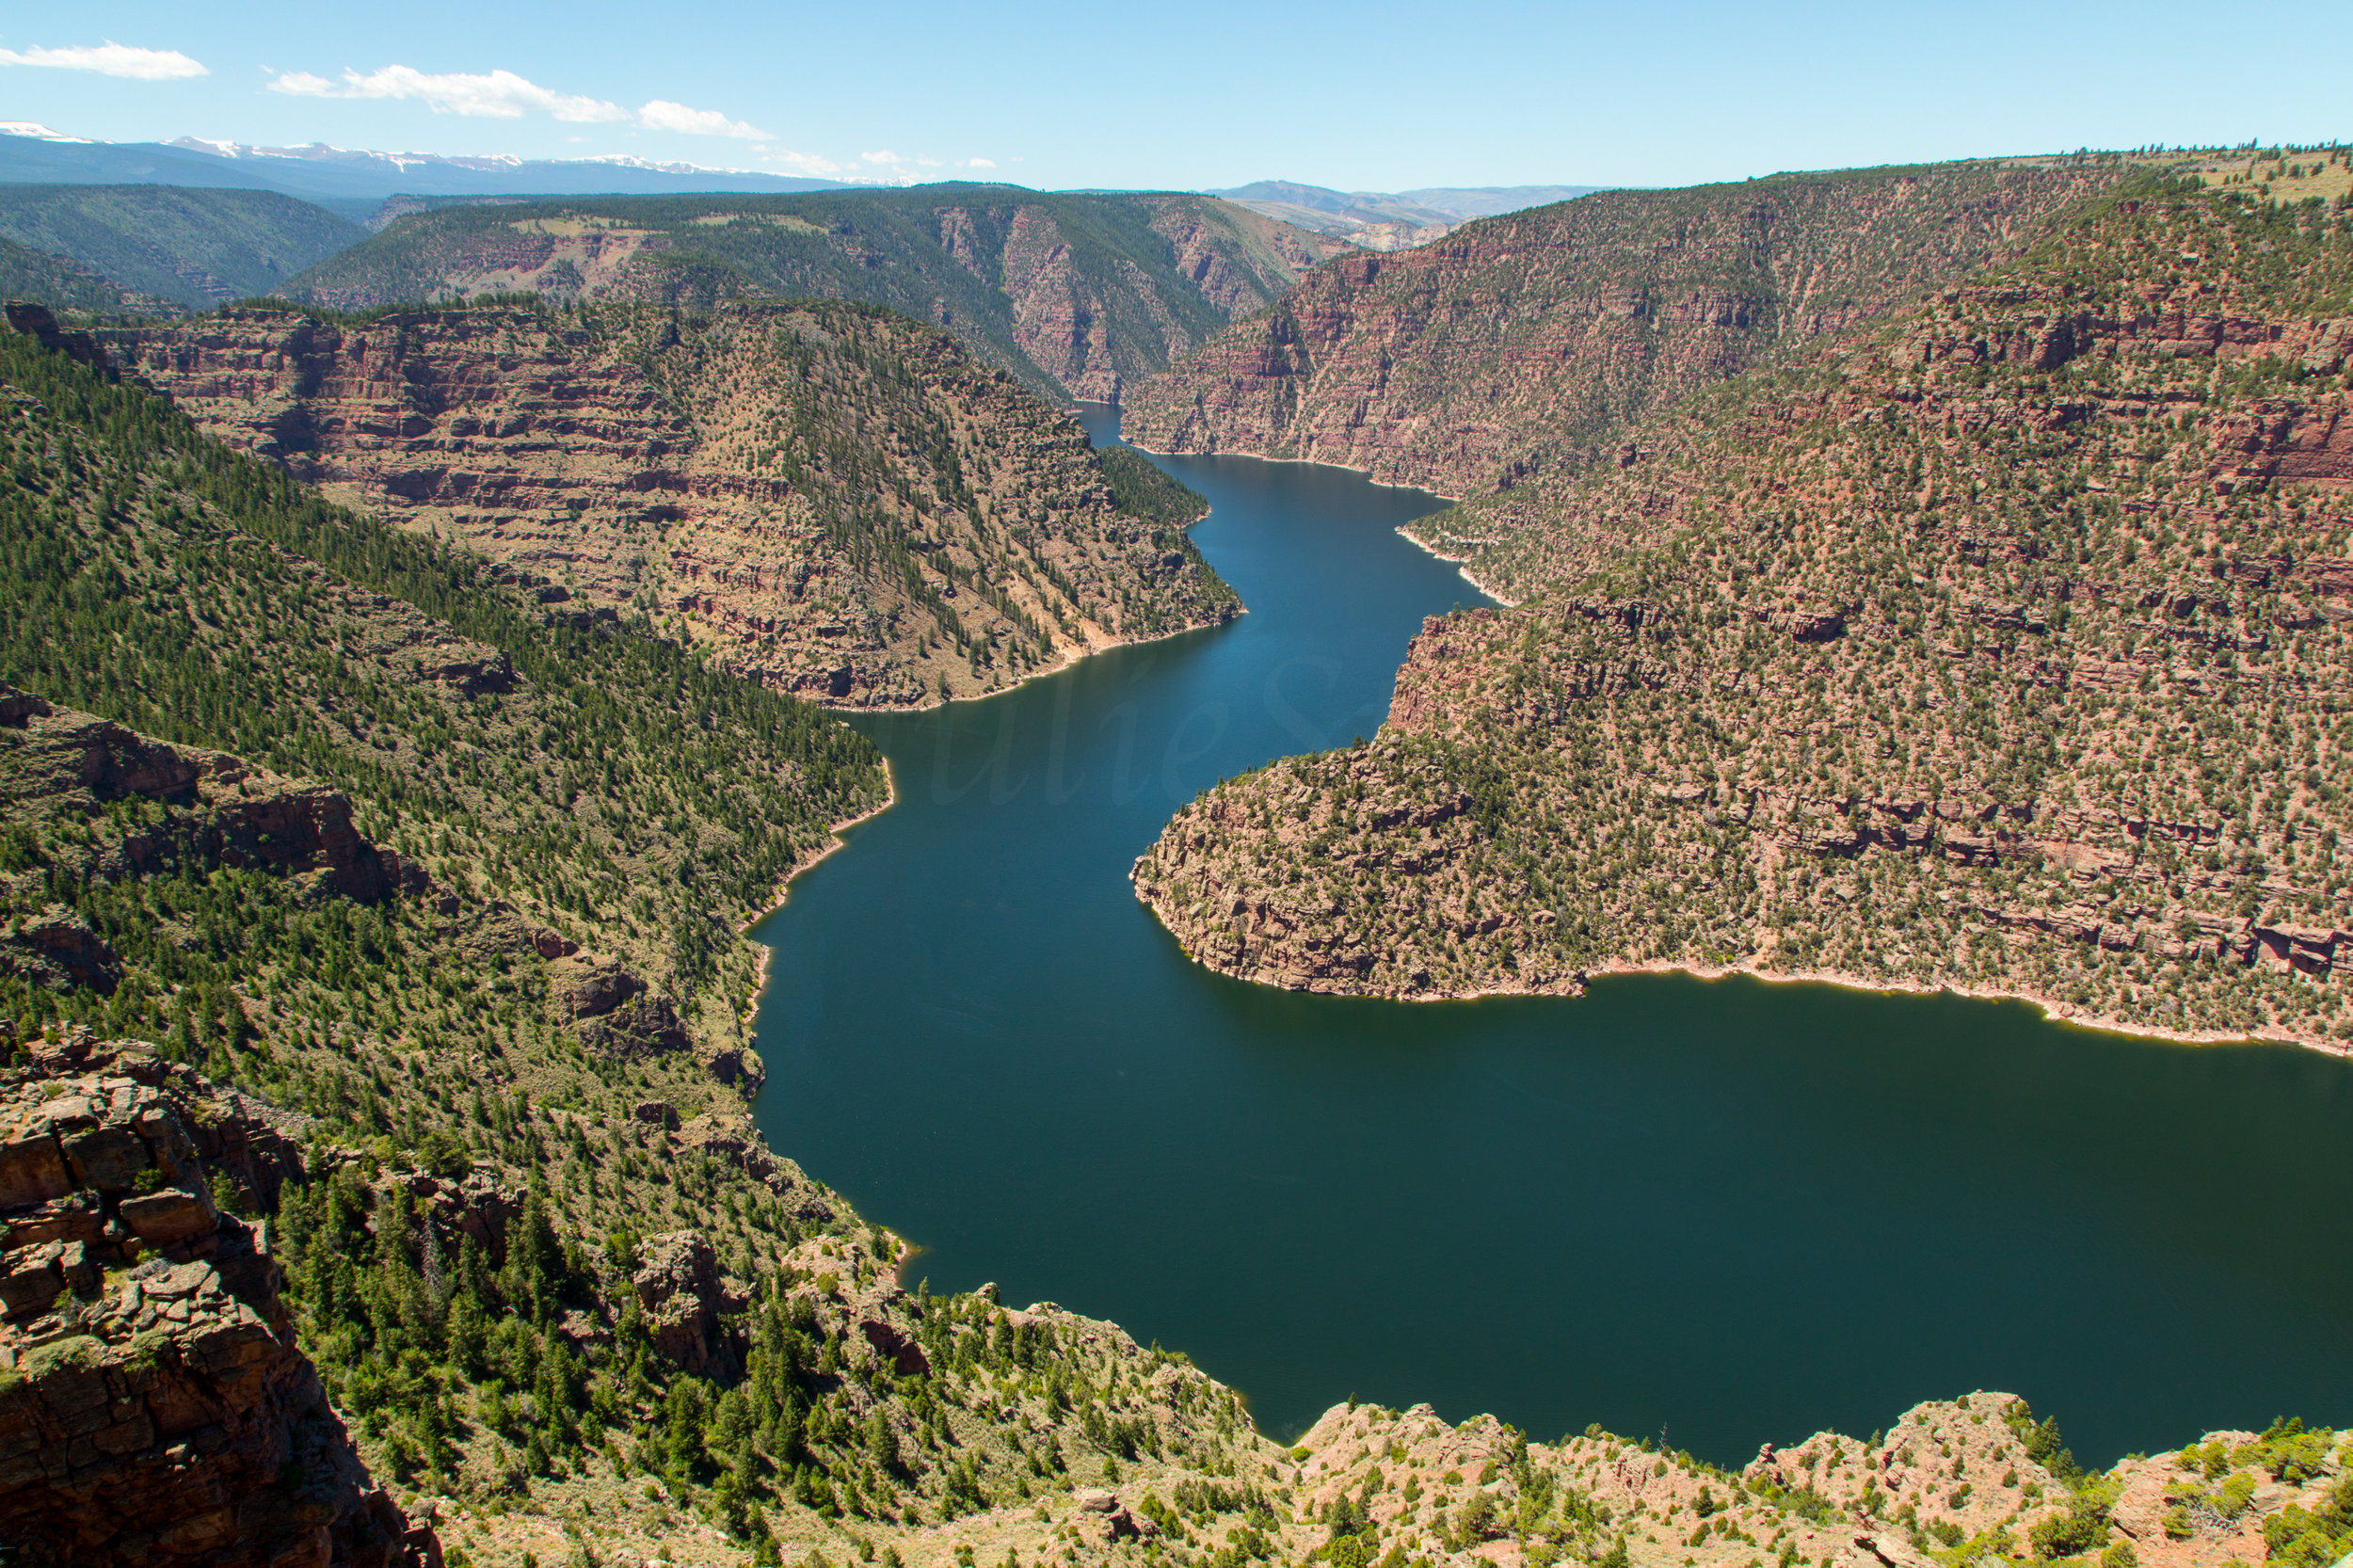 Flaming Gorge National Recreational Area, Image # 8952